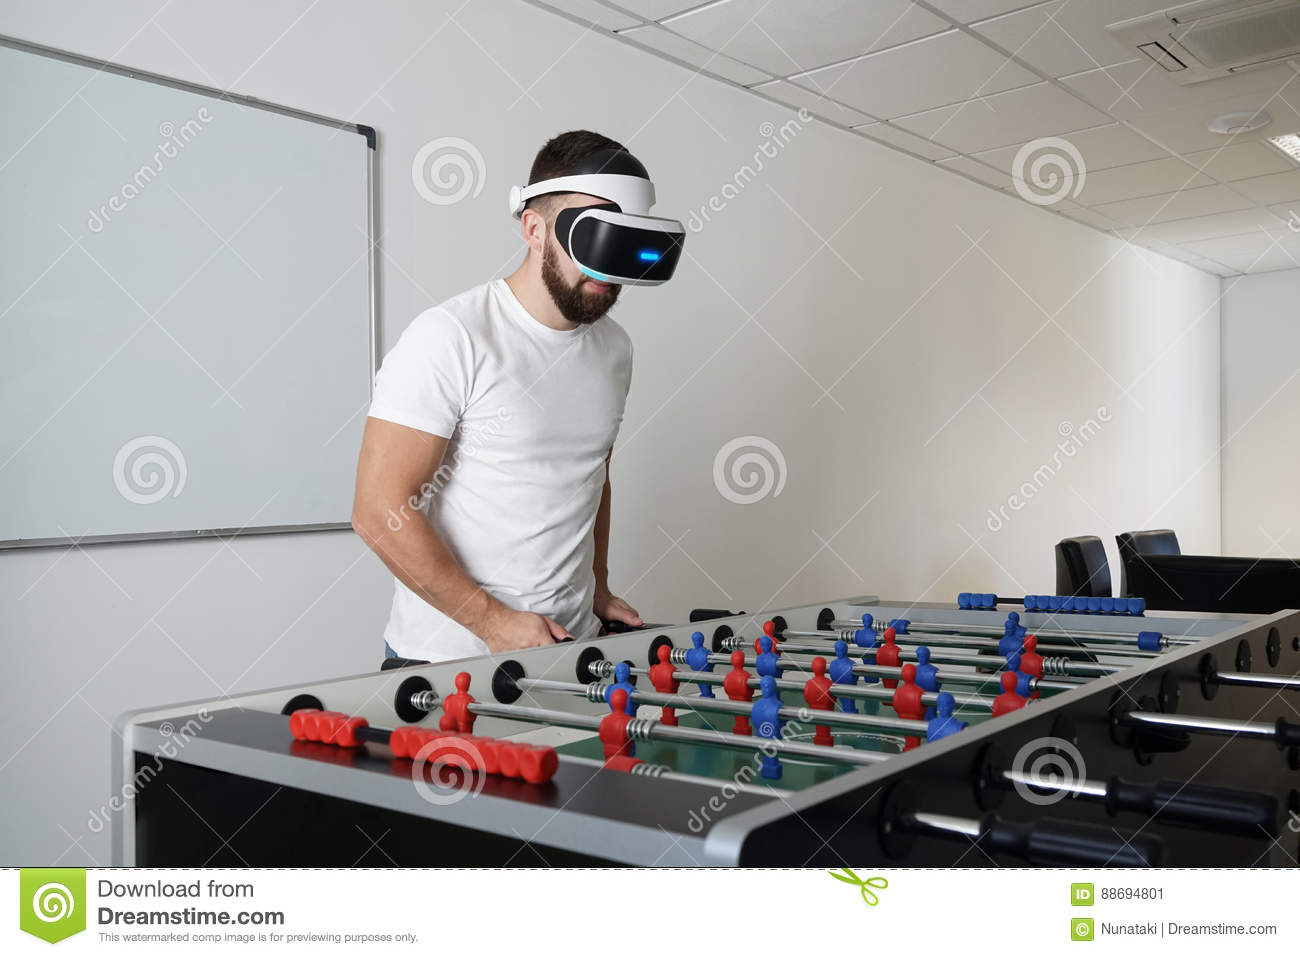 Man in virtual glasses playing at office in table soccer